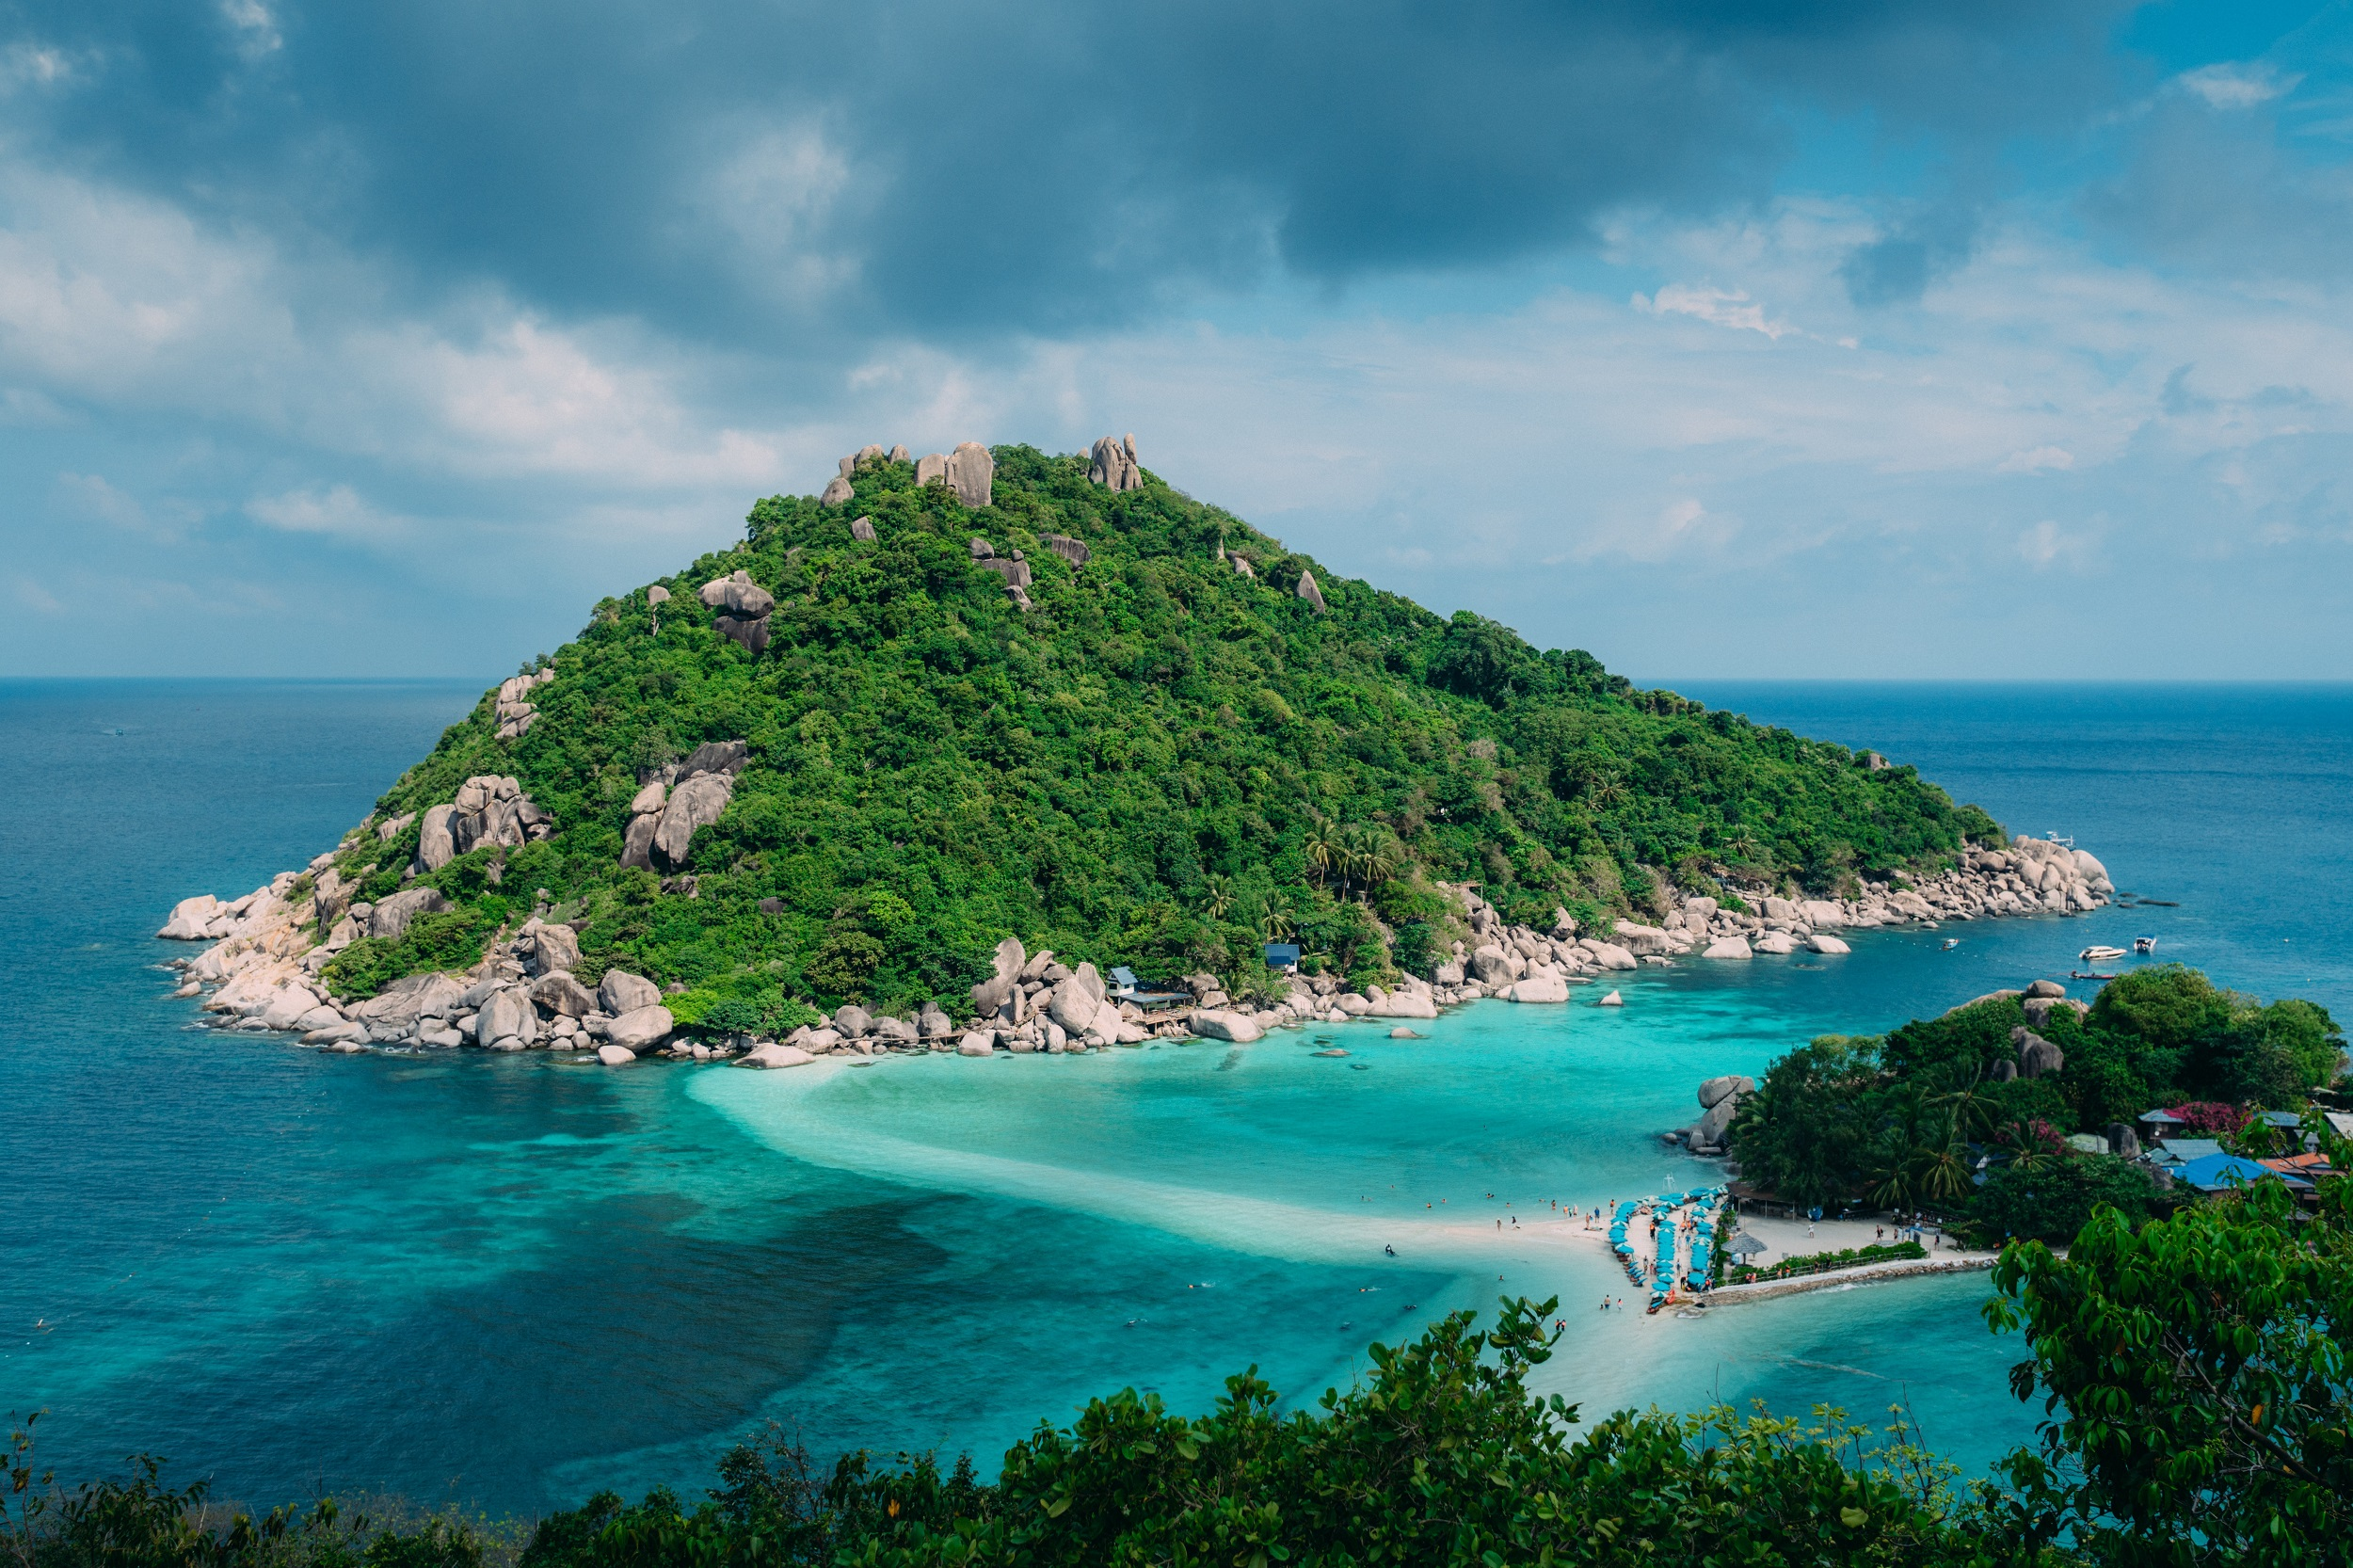 View of Ko Samui island